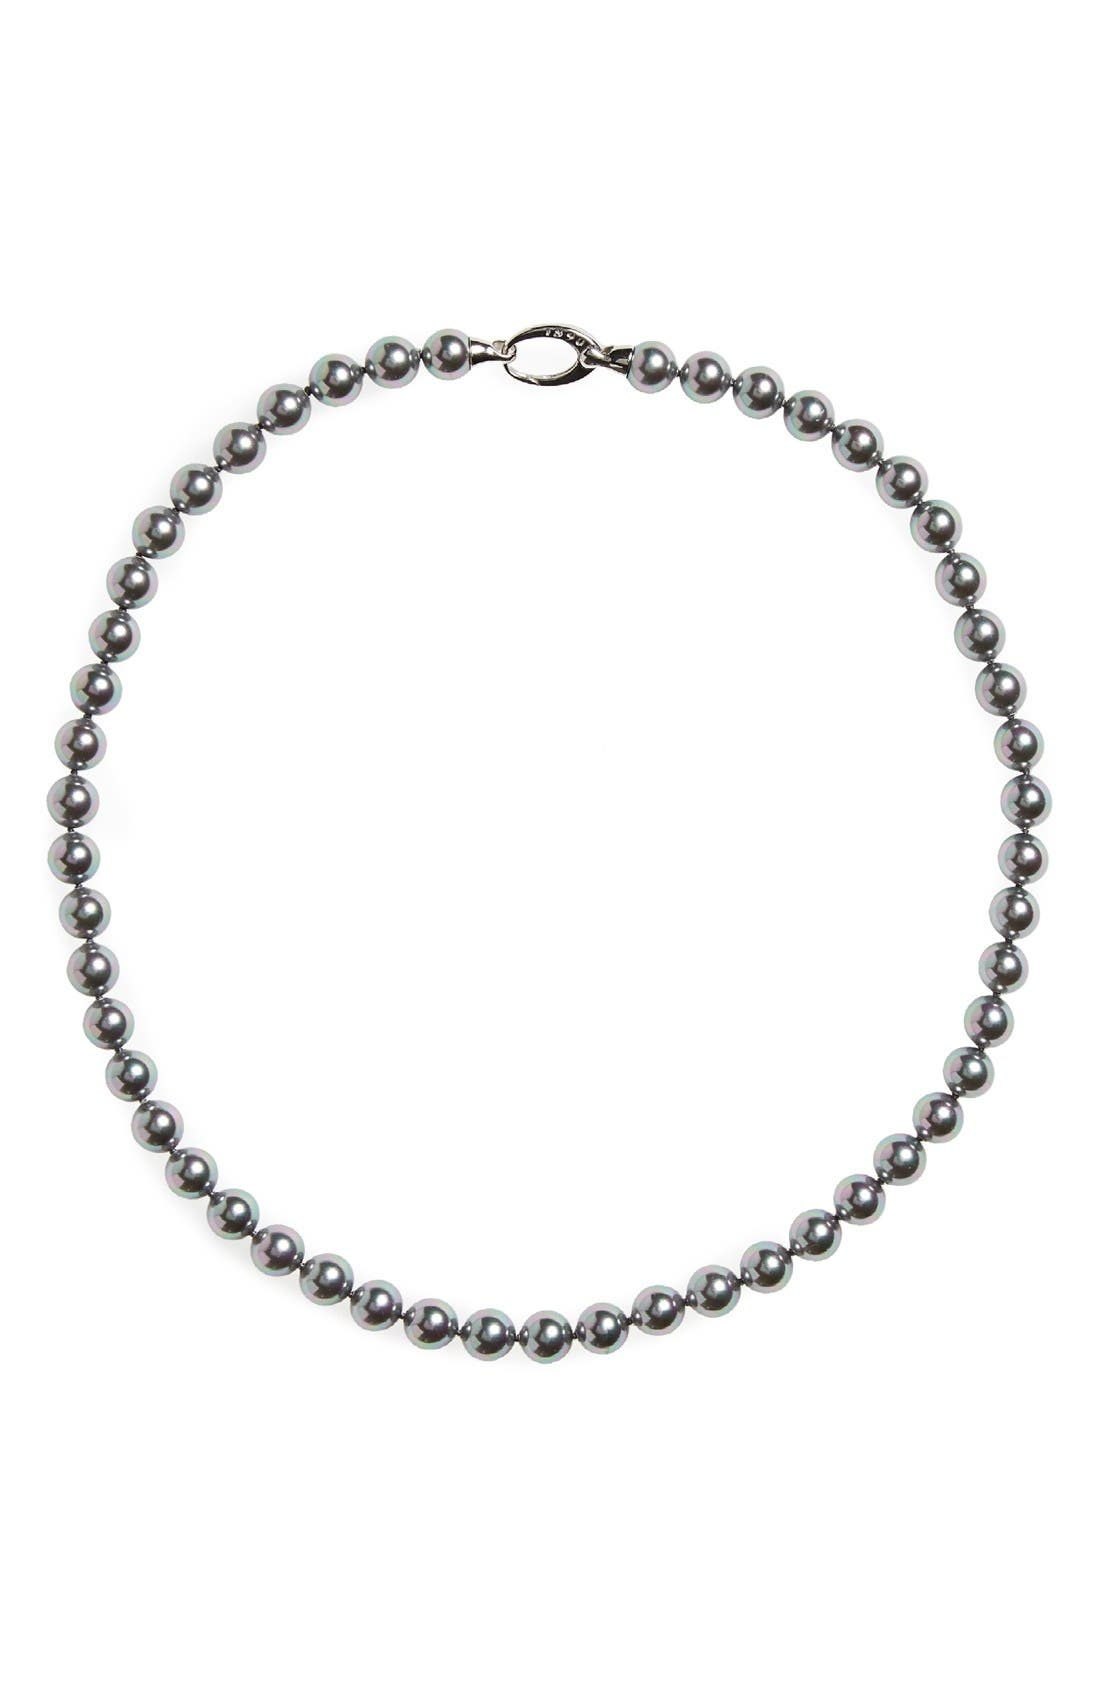 7mm Round Simulated Pearl Strand Necklace,                         Main,                         color, Grey